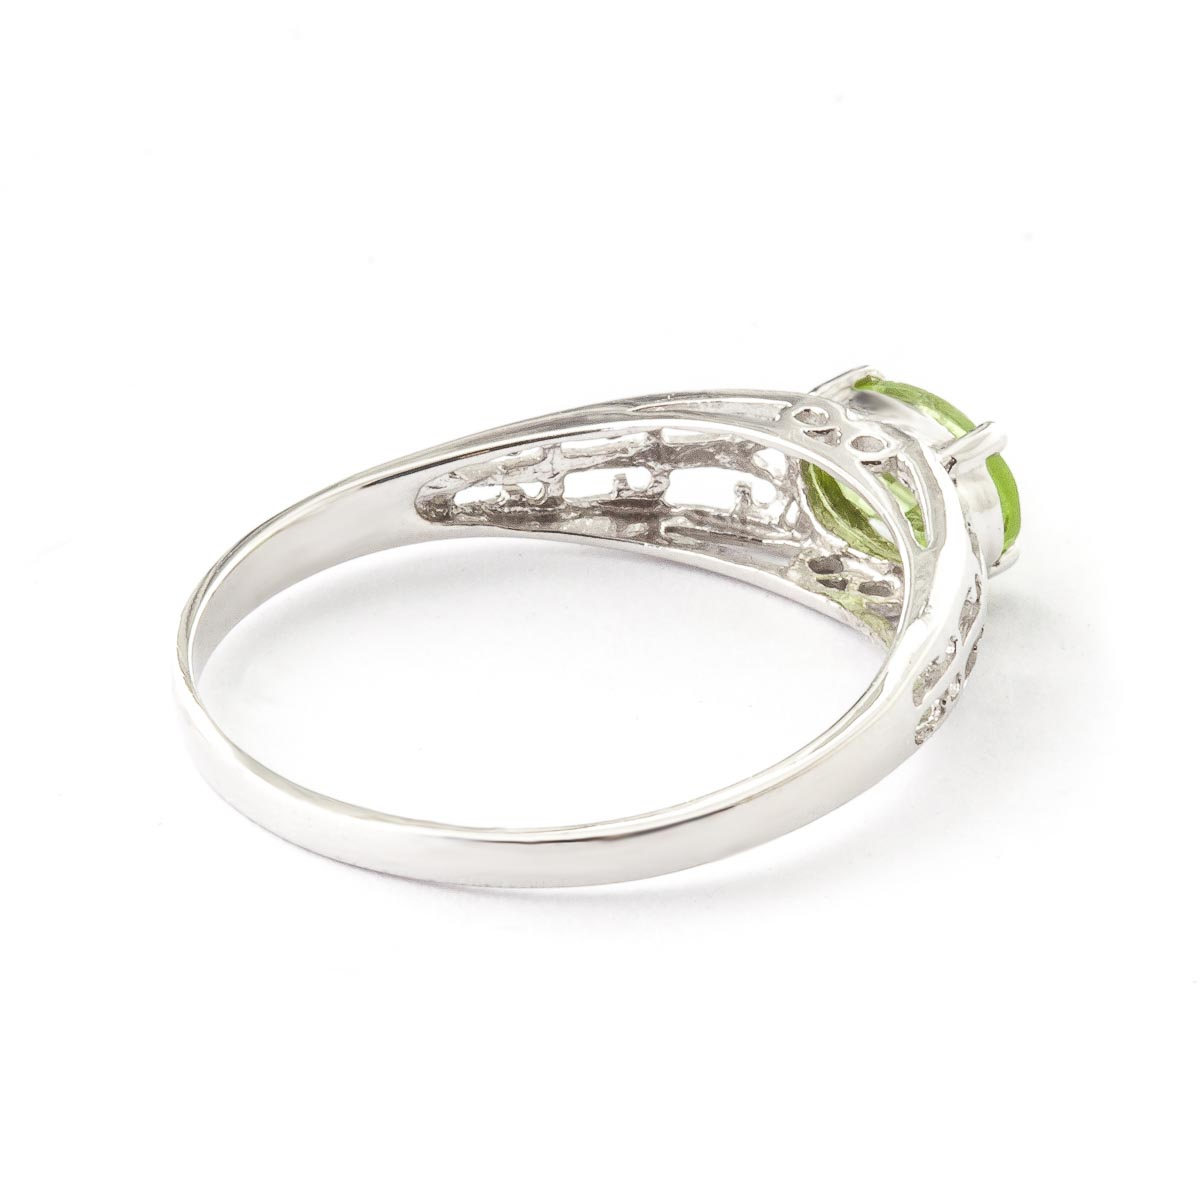 Peridot Catalan Filigree Ring 1.15ct in 14K White Gold